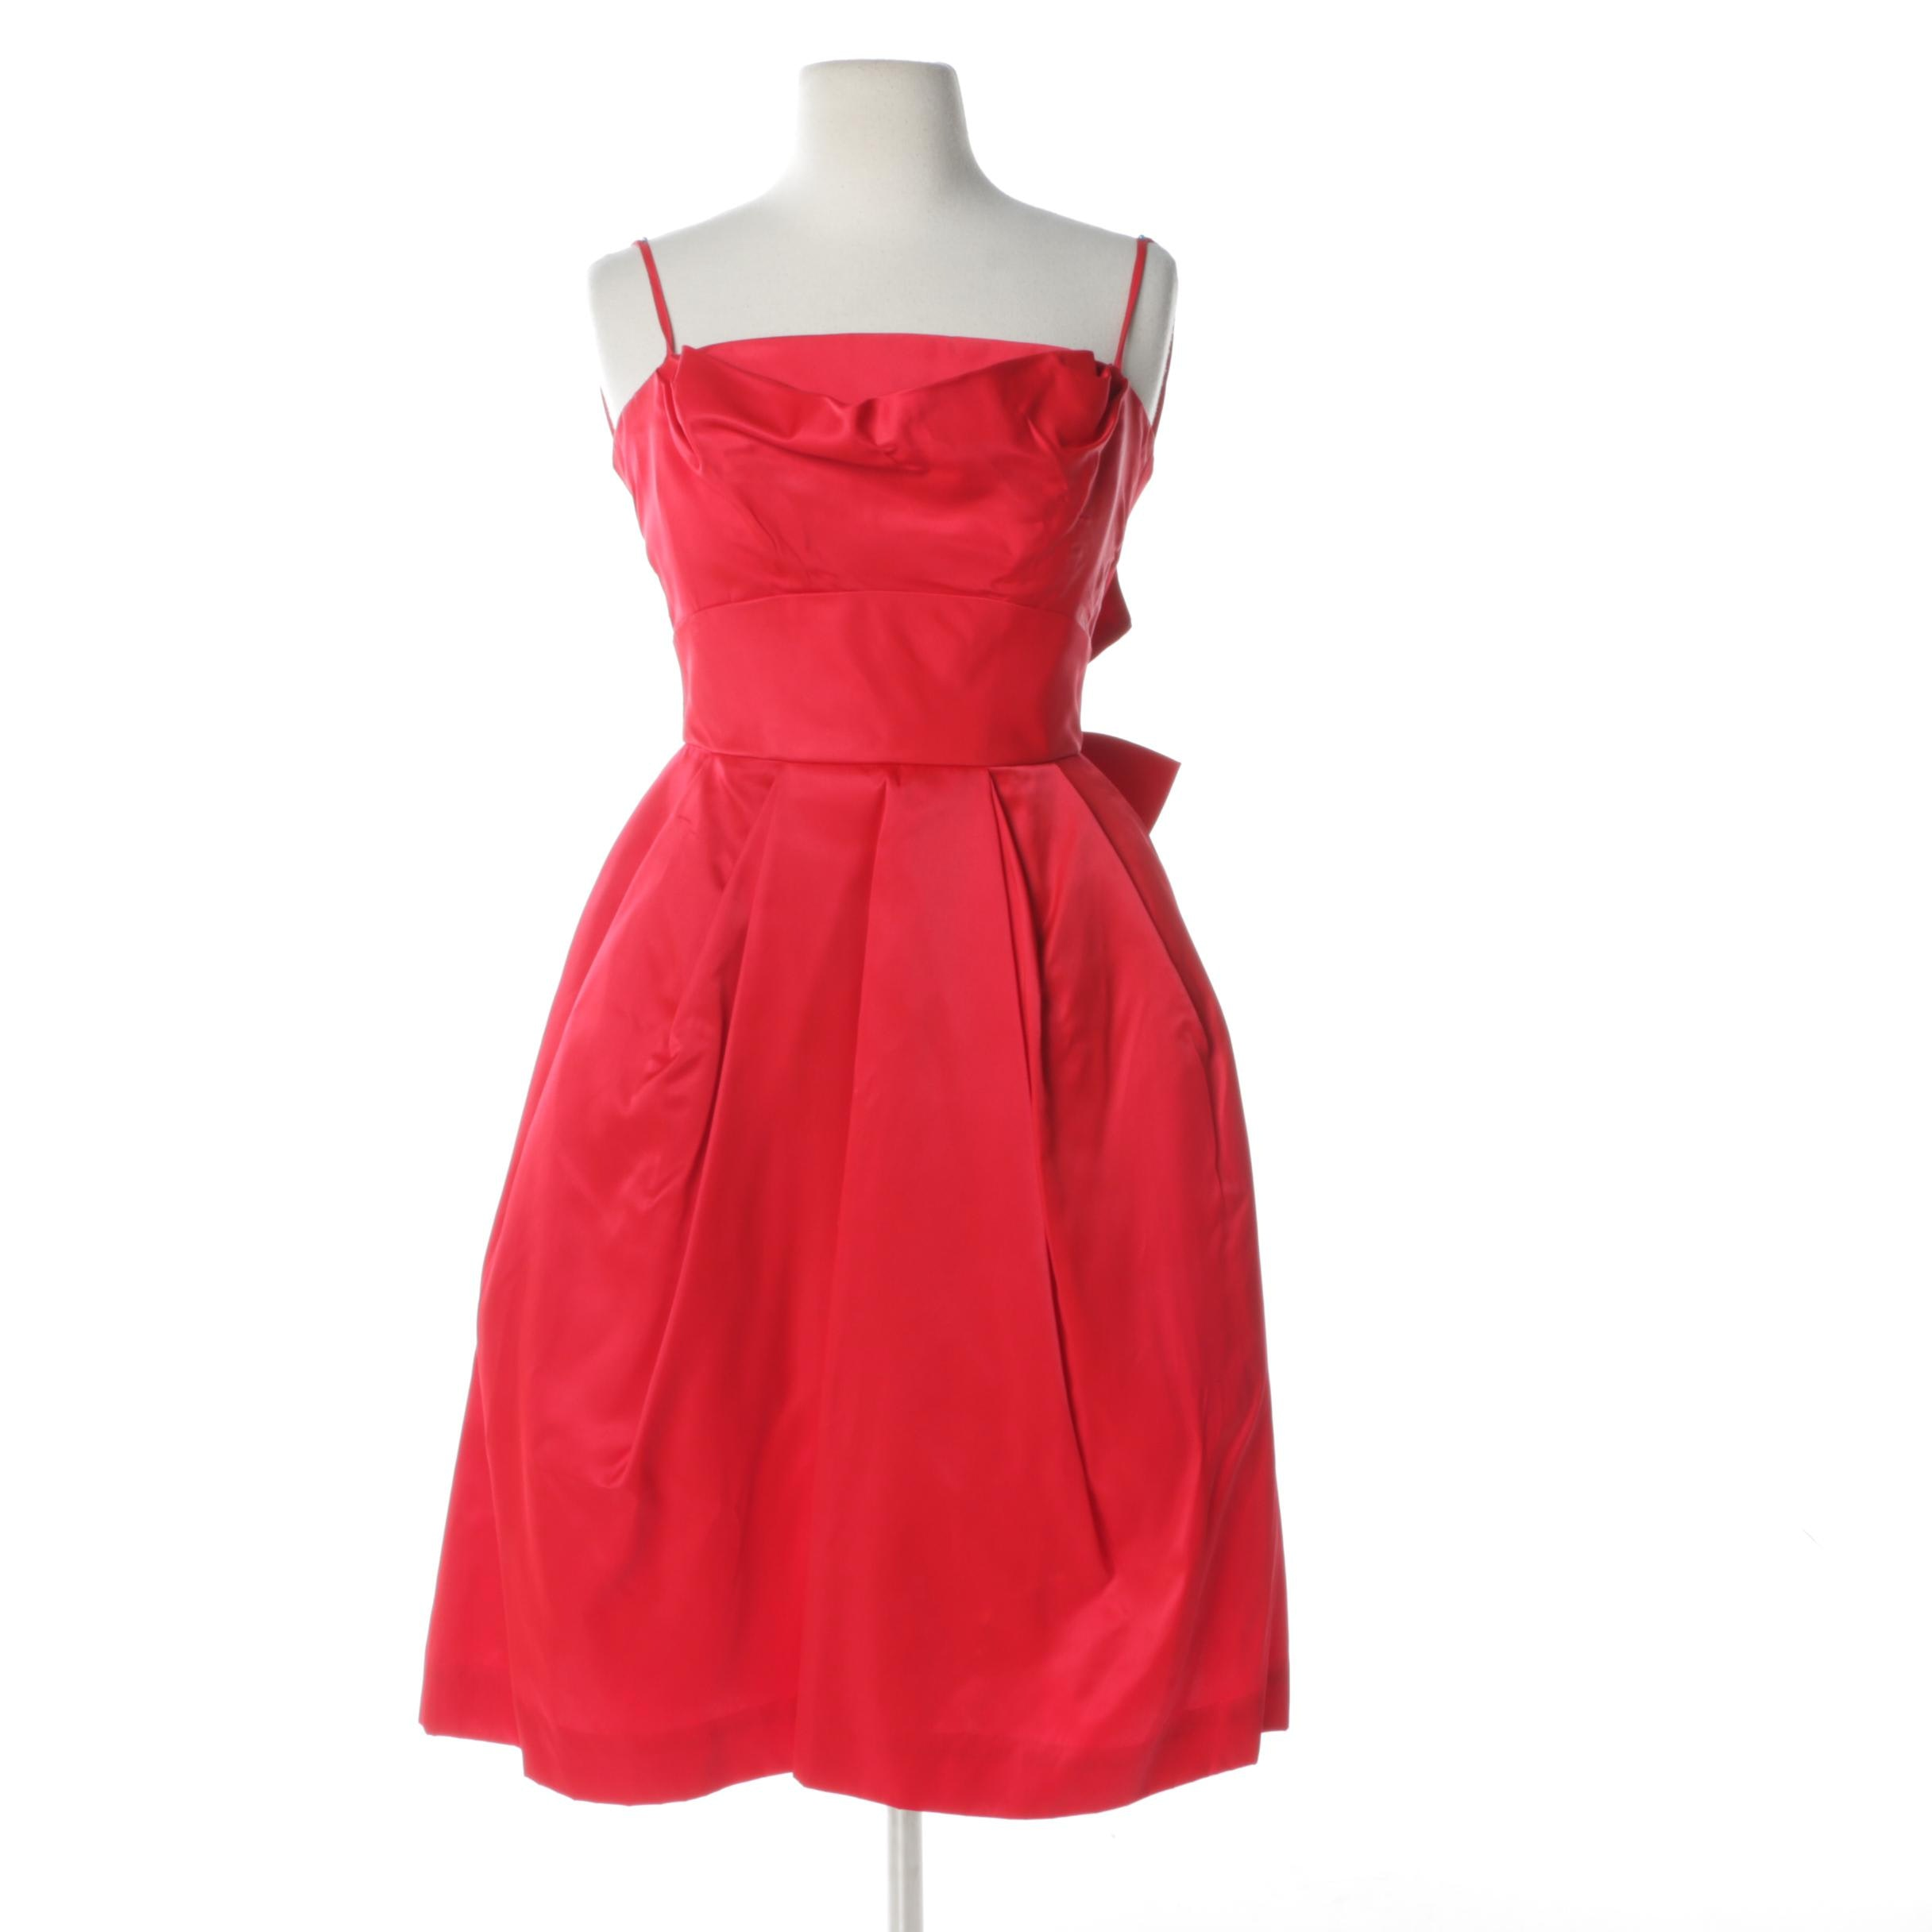 Circa 1960s Lorrie Deb Poppy Red Cocktail Dress